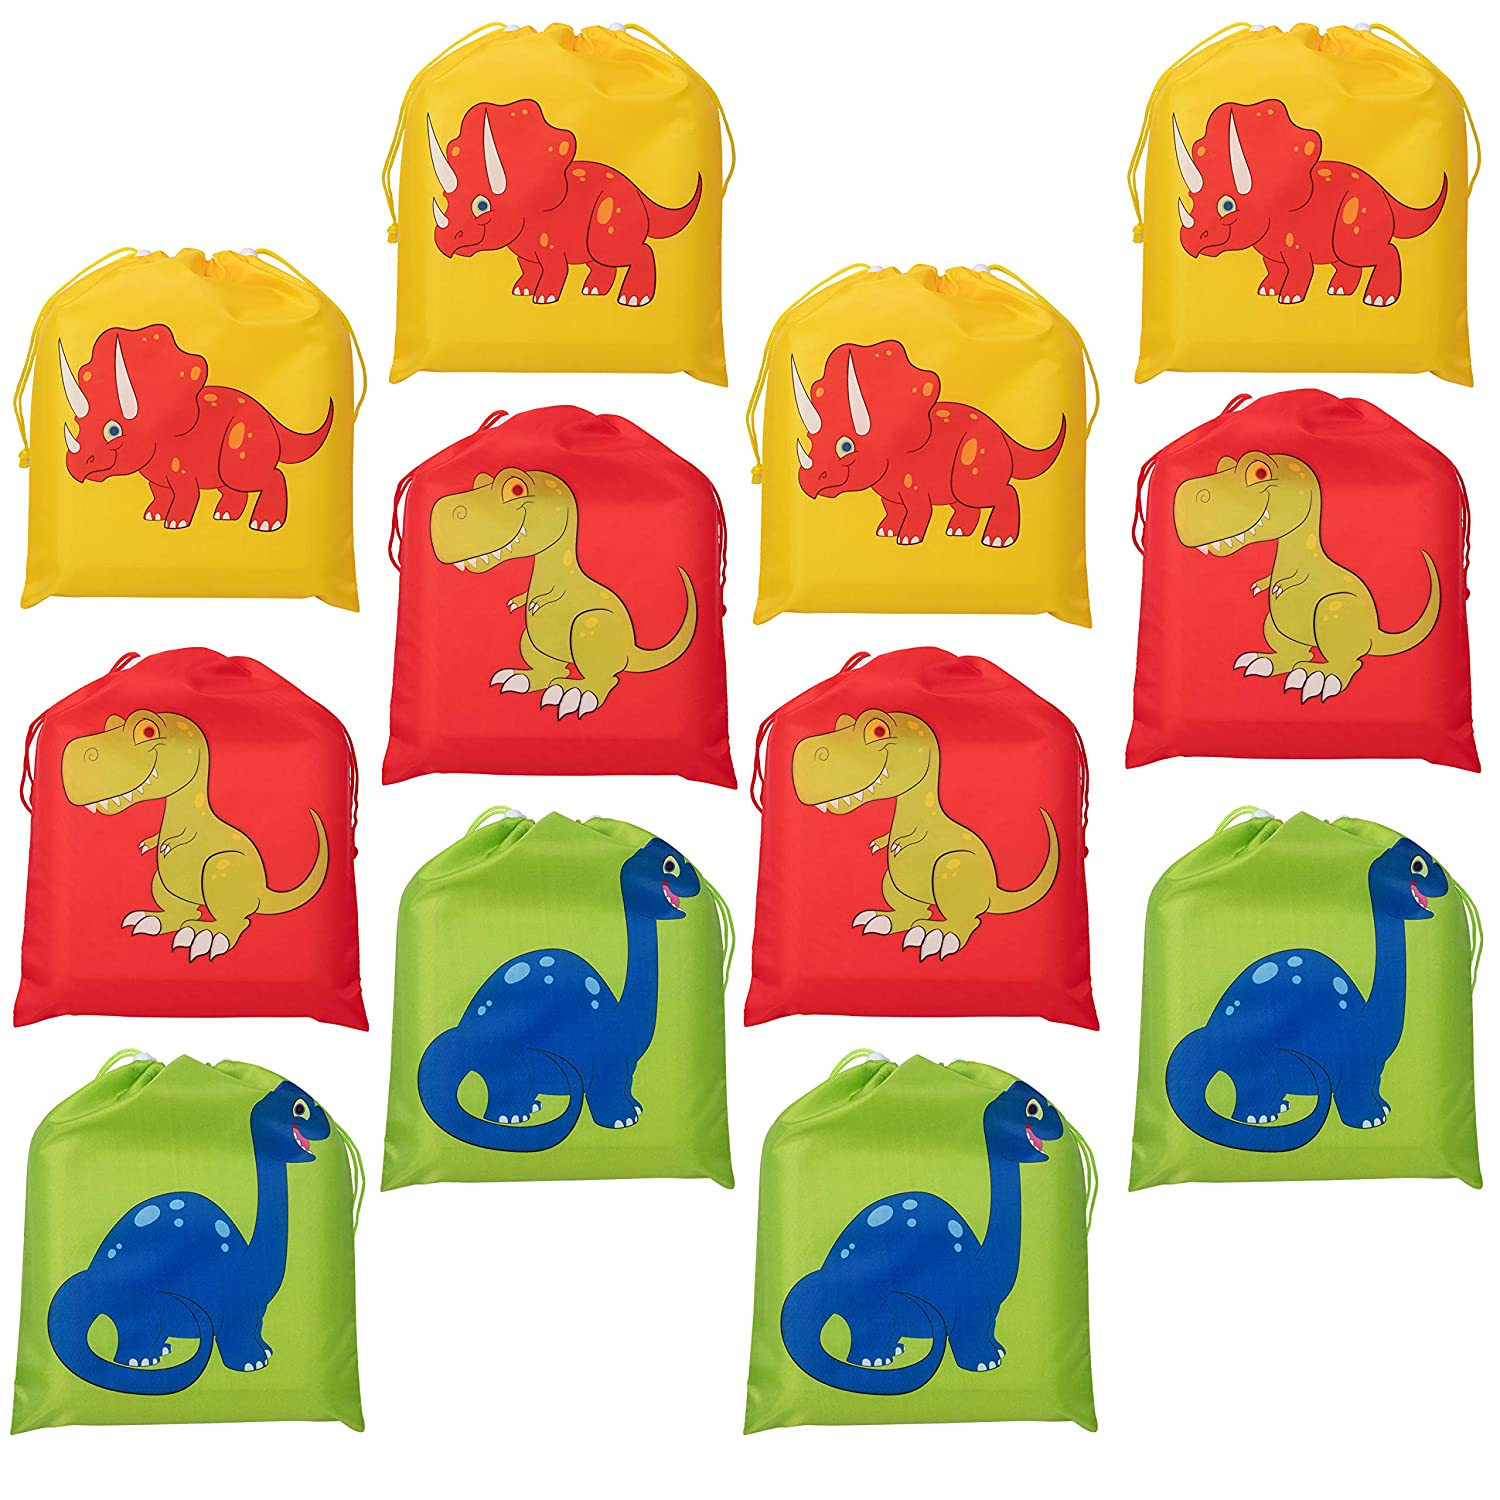 12-Pack Party Favor Bags for Kids Dinosaur Birthday 9.7 x 12 Inches Juvale Yellow 3 Assorted Designs Dino Themed Party Supplies Red For Giveaways and Gifts Green Drawstring Bags Goodie Treat Bags